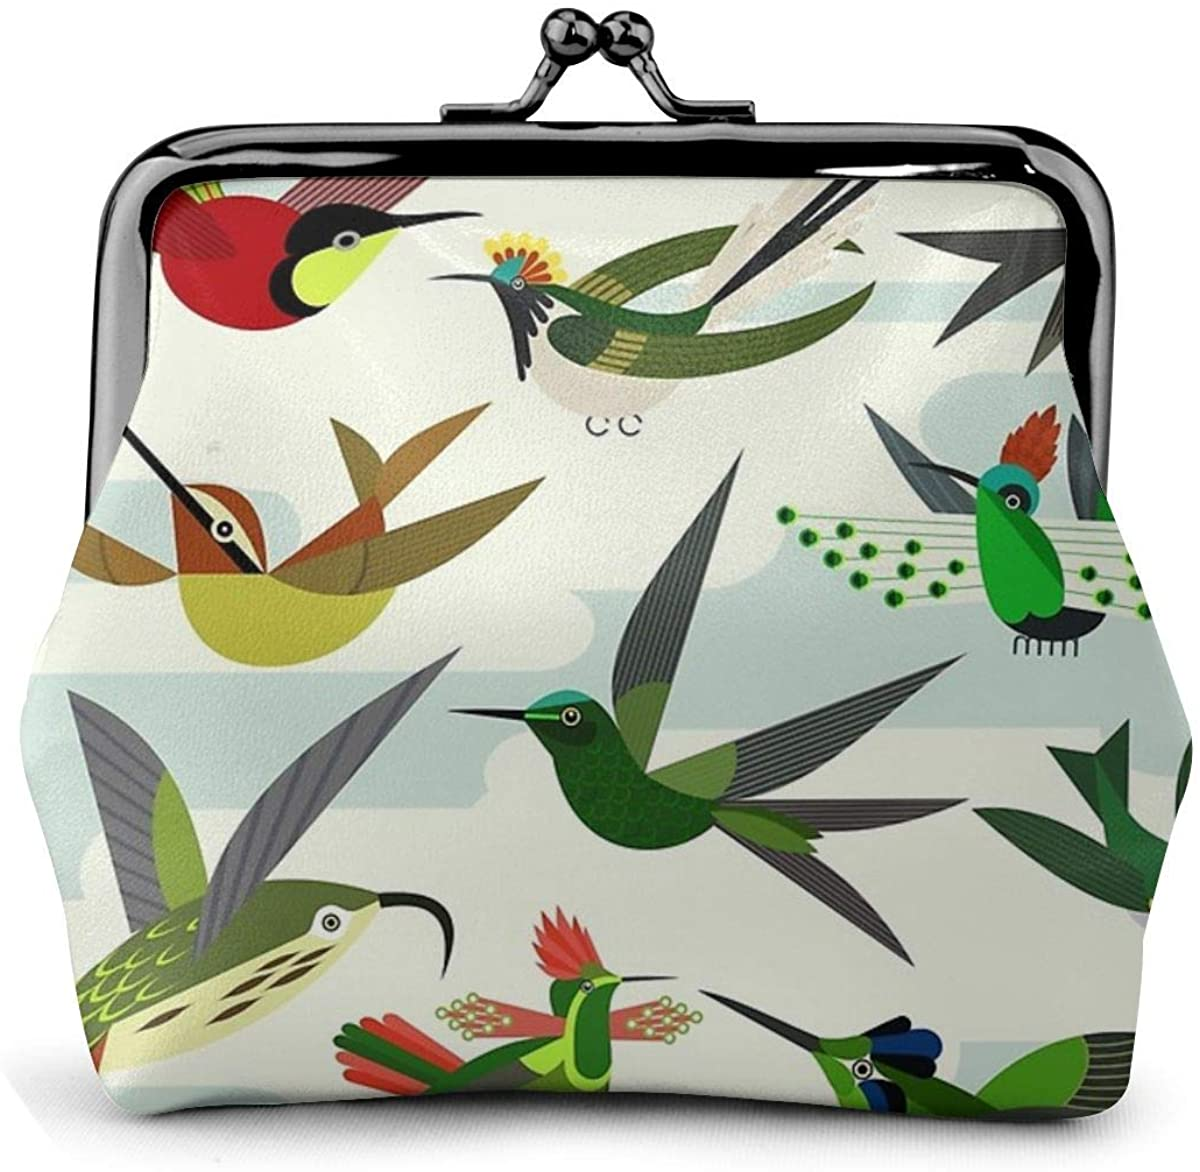 Hummingbirds After Haekel Coin Pouch Leather Change Purse Kiss Clasp Lock Mini Cosmetic Makeup Bags for Women and Girls